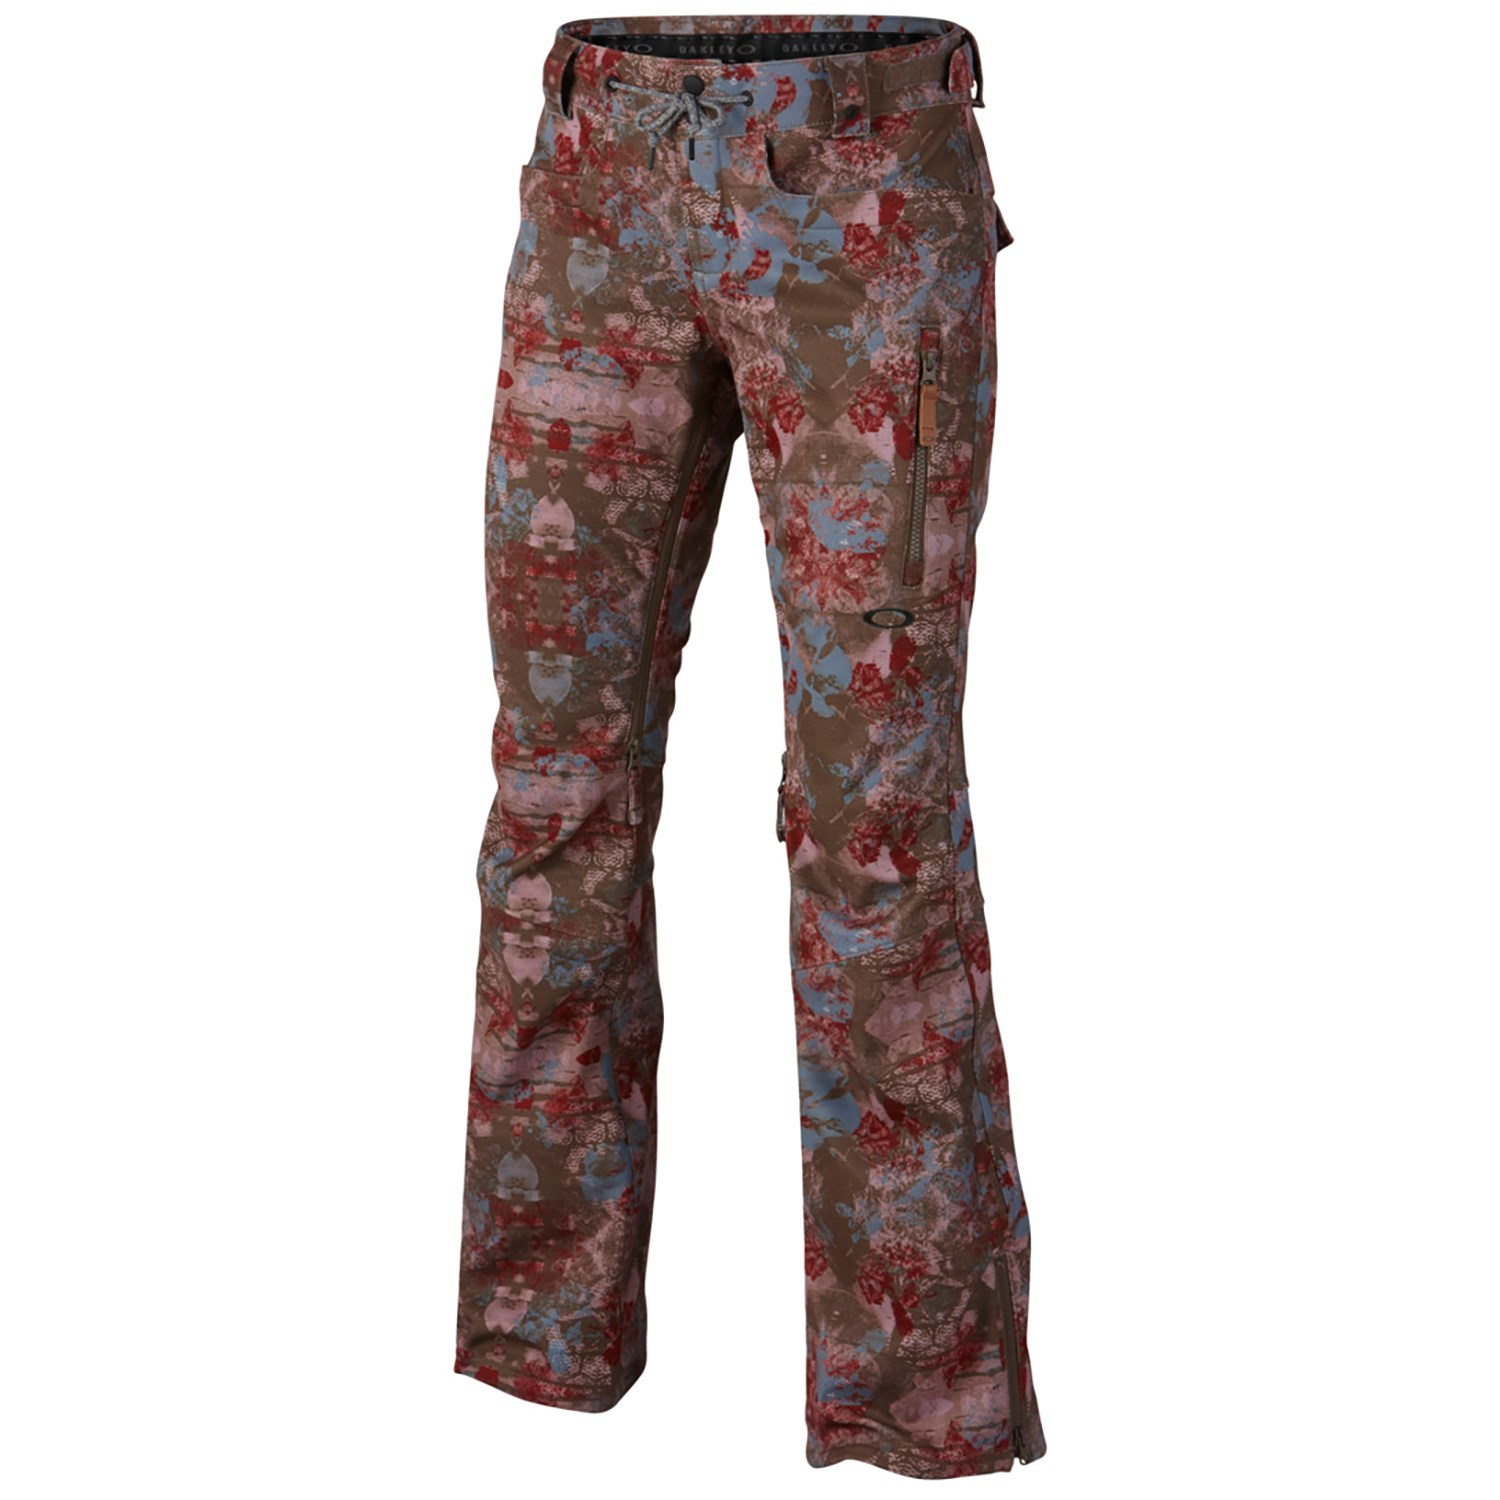 oakley ski pants on sale  oakley silver queen softshell pants women's $249.95 $199.99 sale